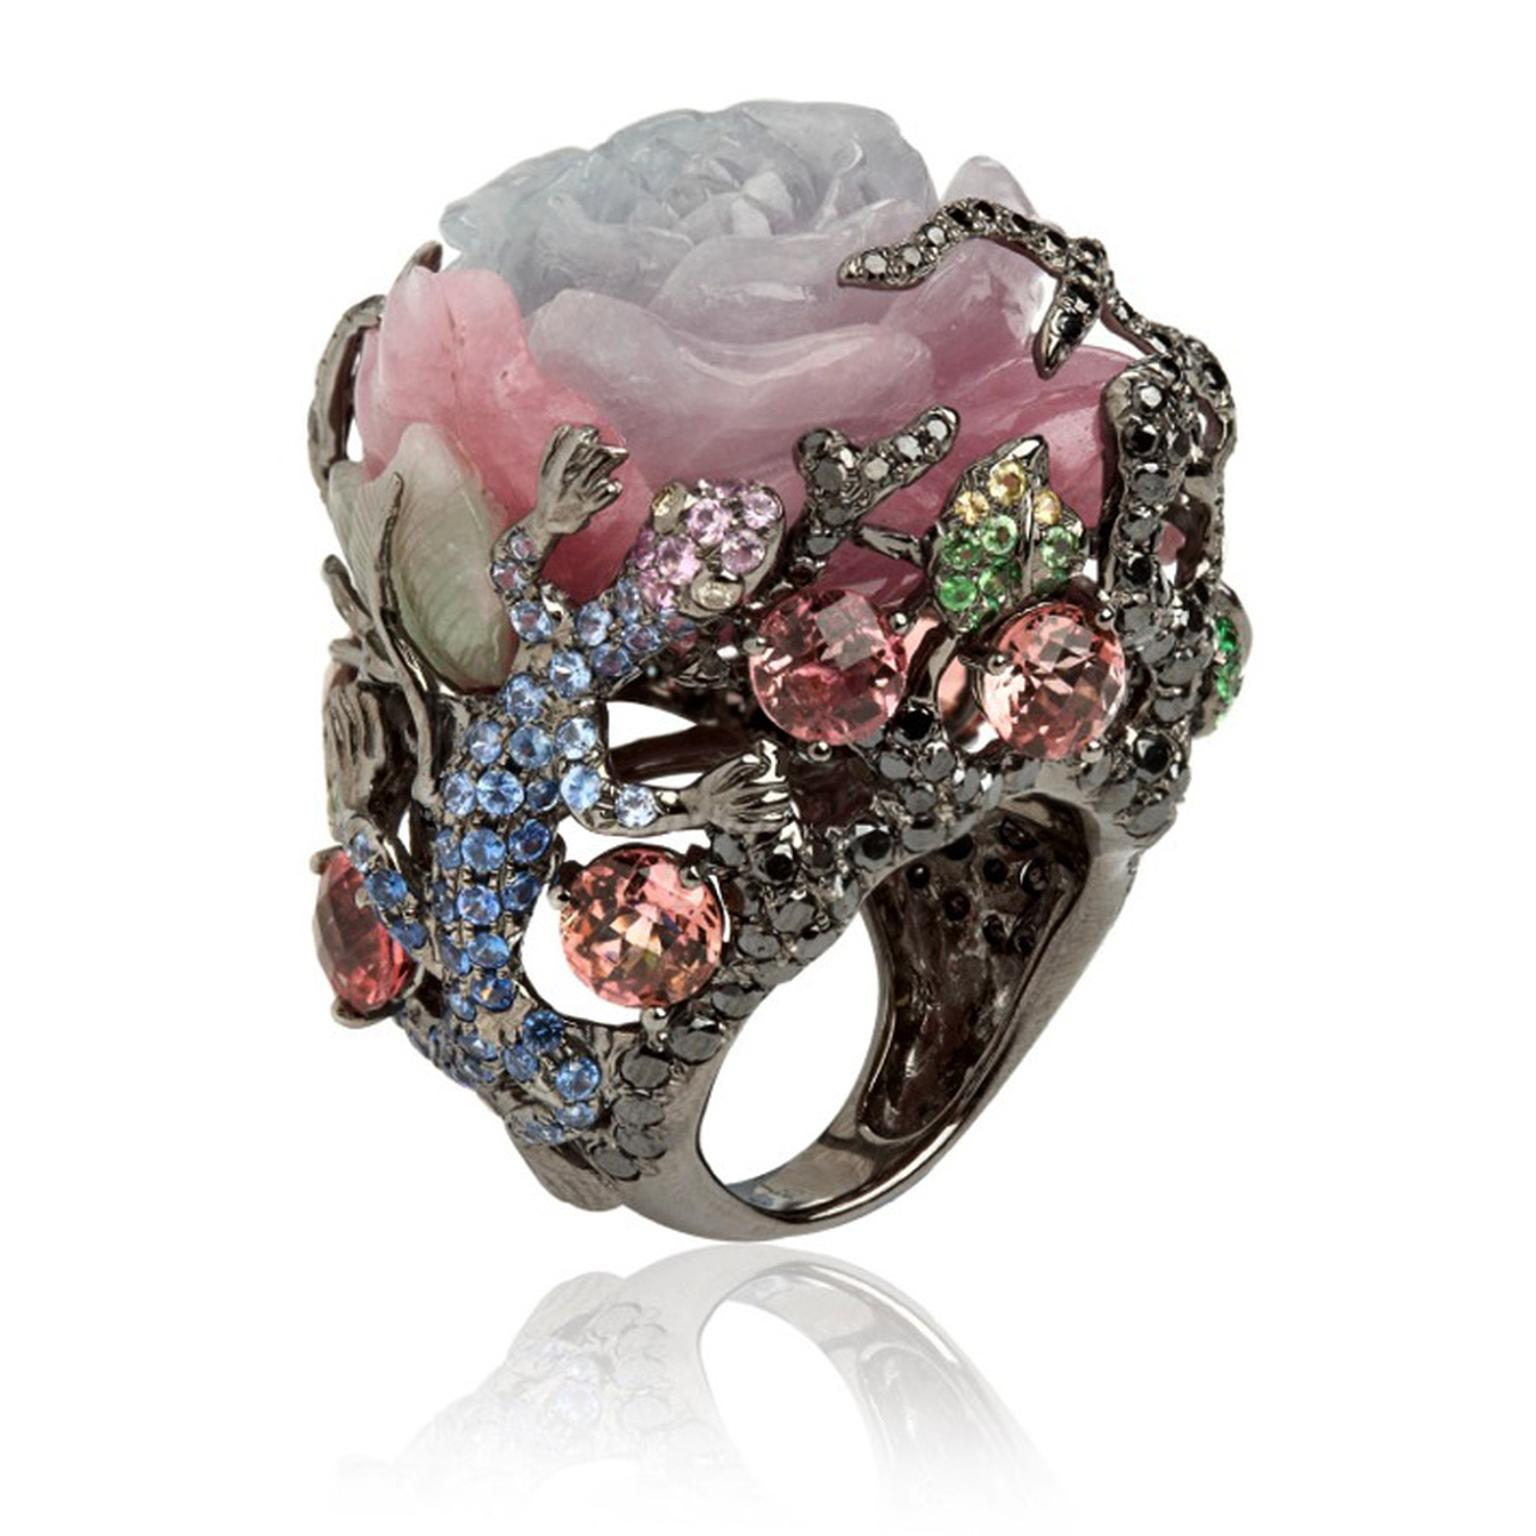 Wendy-Yue-Fantasie-18ct-white-gold--diamondsapphiregarnetjade-and-tourmaline-Dusty-Rose-ring-By-Wendy-Yue--for-Annoushka.jpg